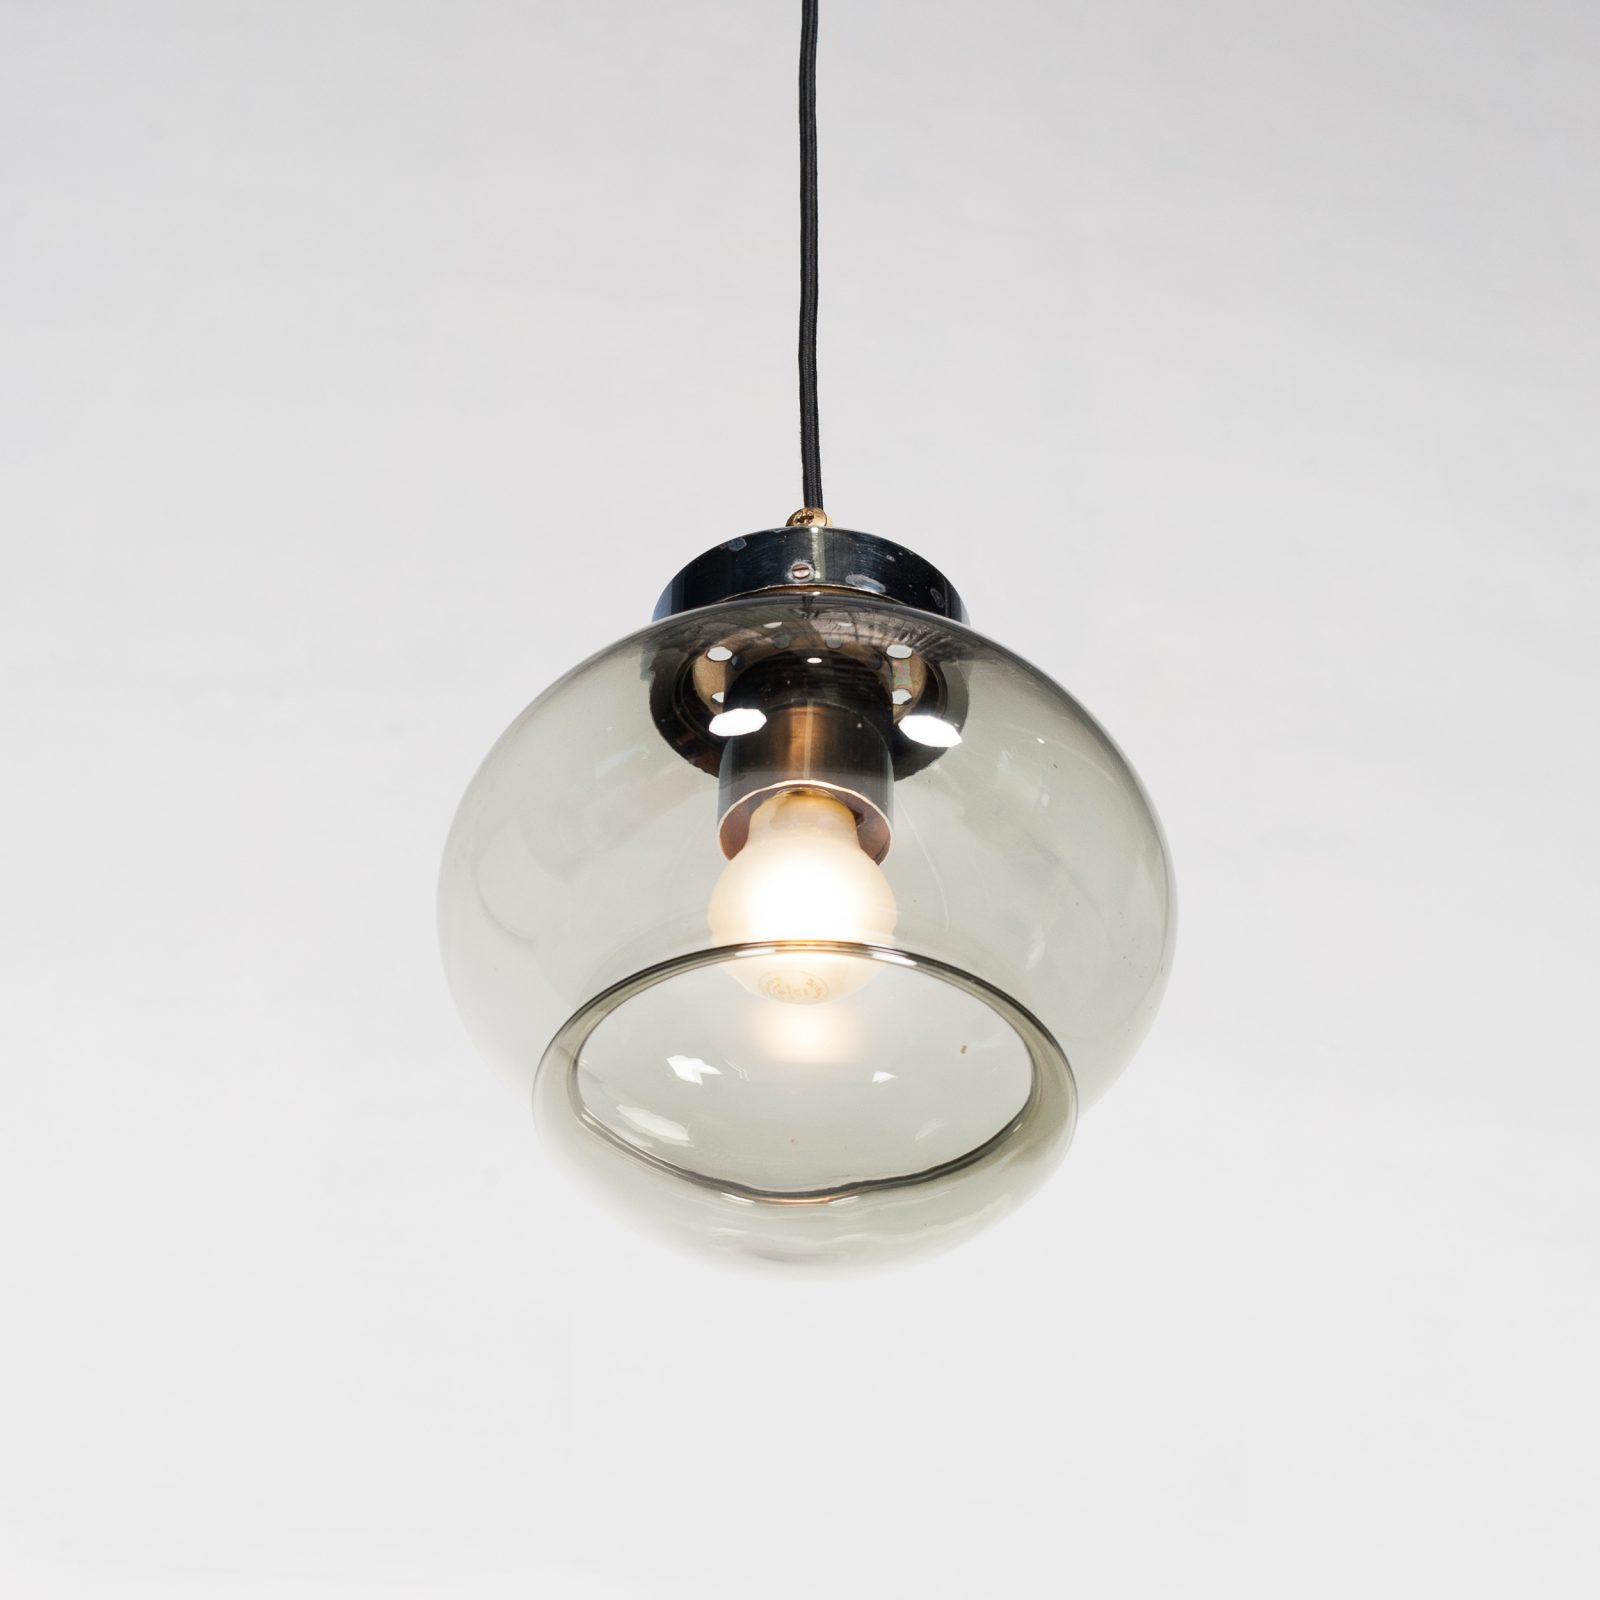 Pendant By Raak In Smoked Glass, 1970s, The Netherlands 2